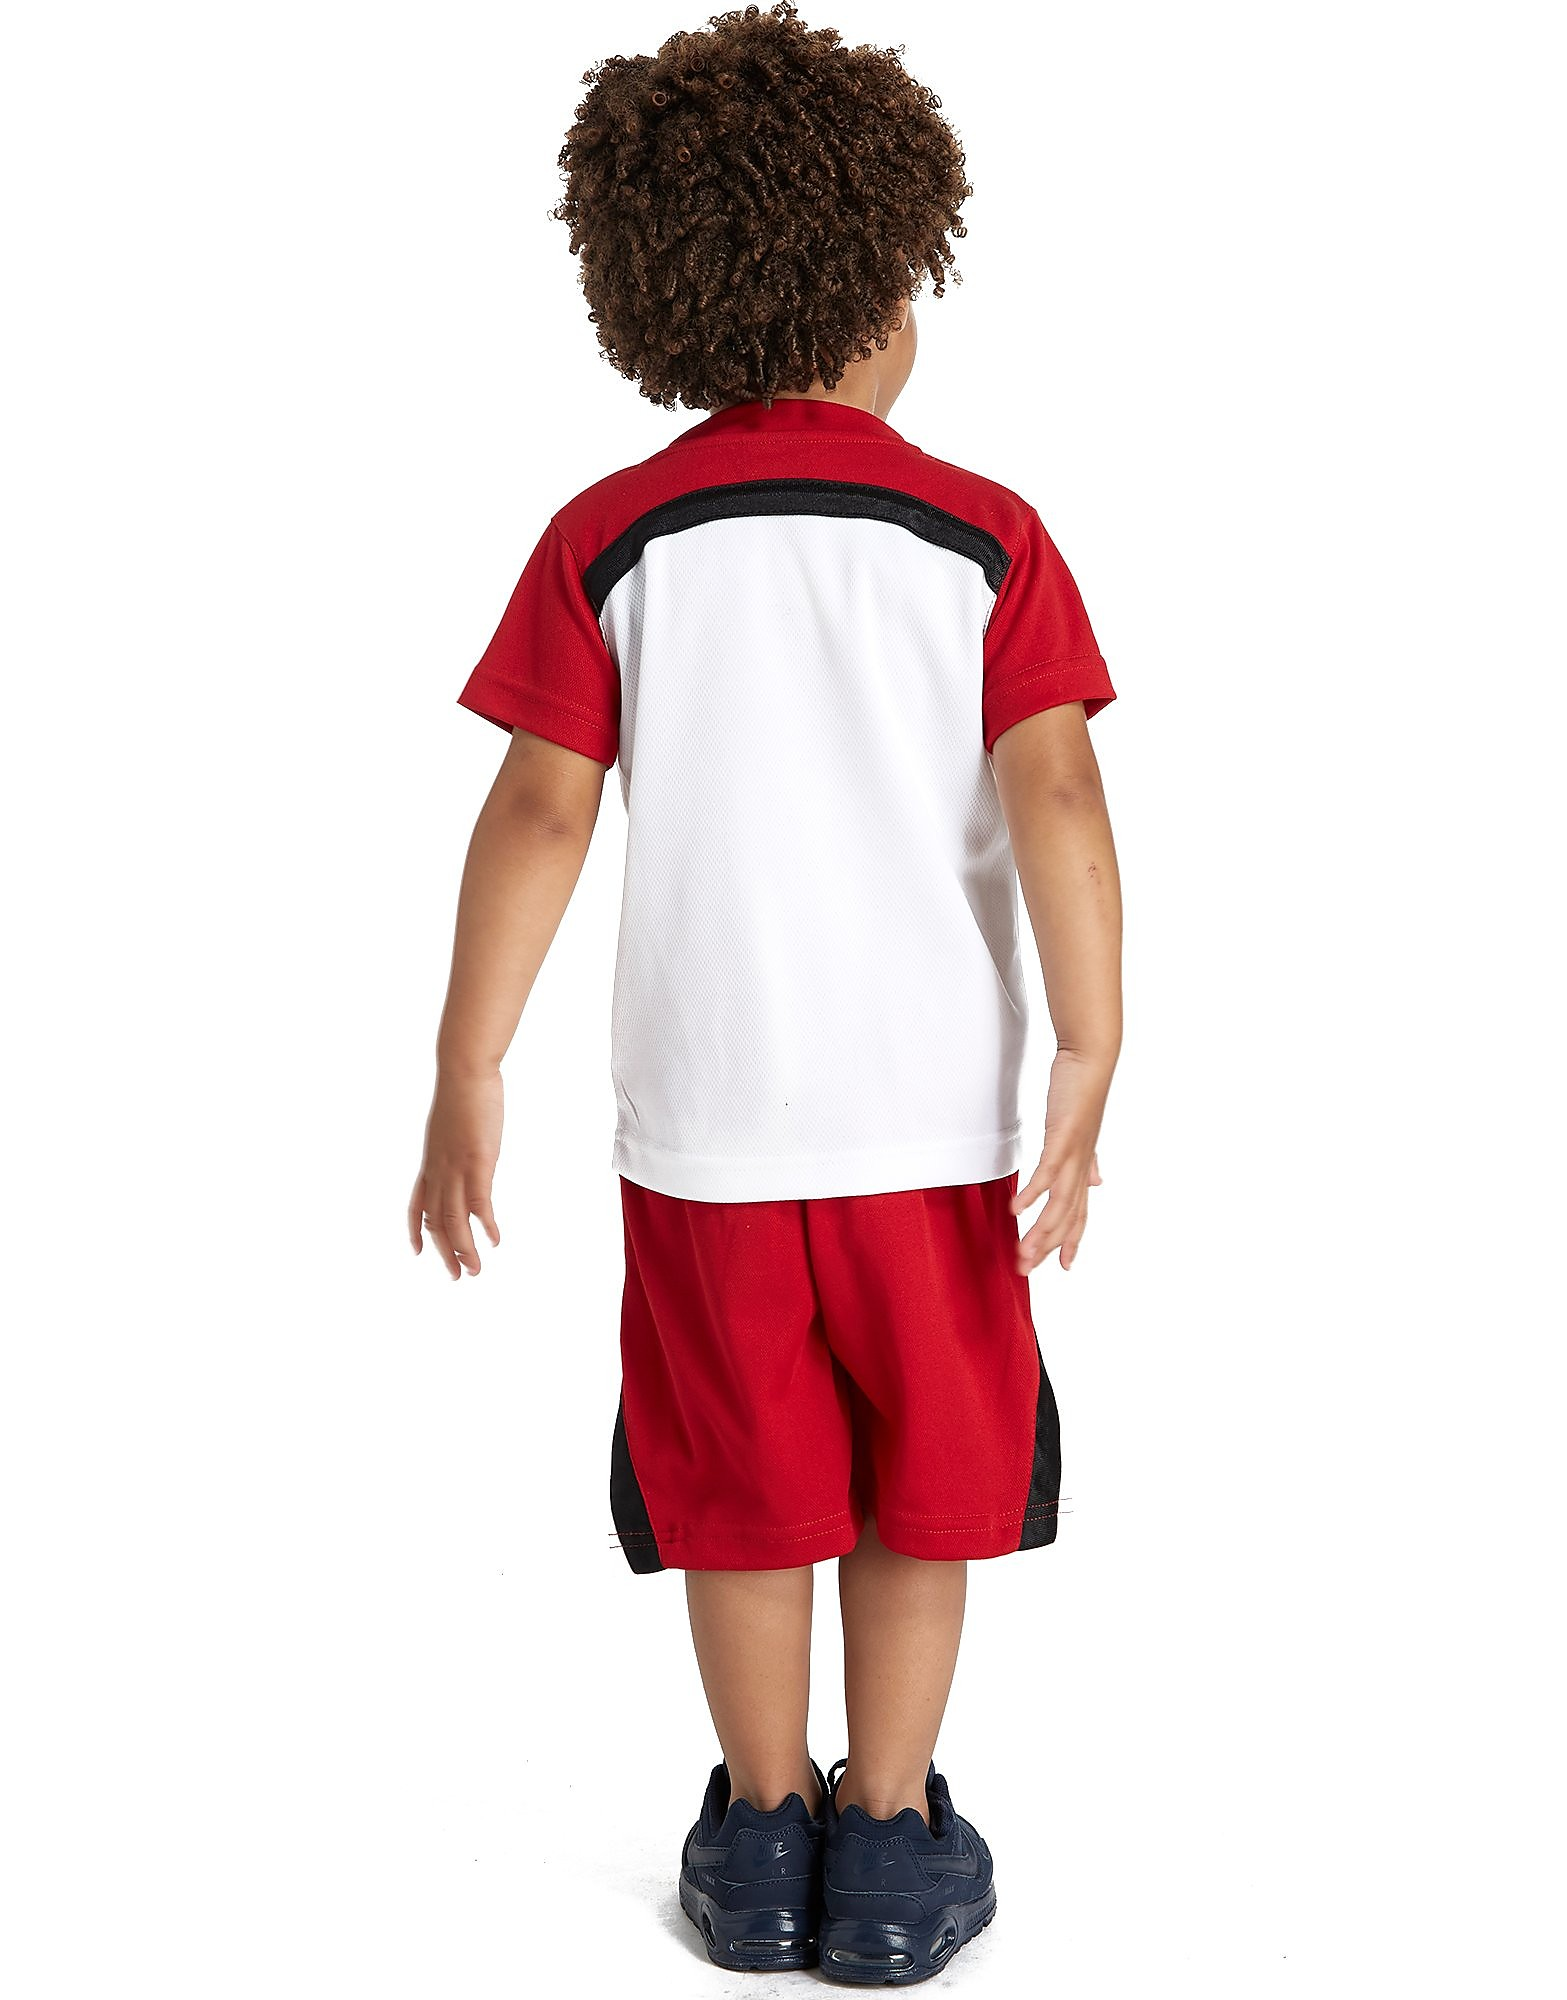 Jordan Court T-Shirt and Shorts Set Children